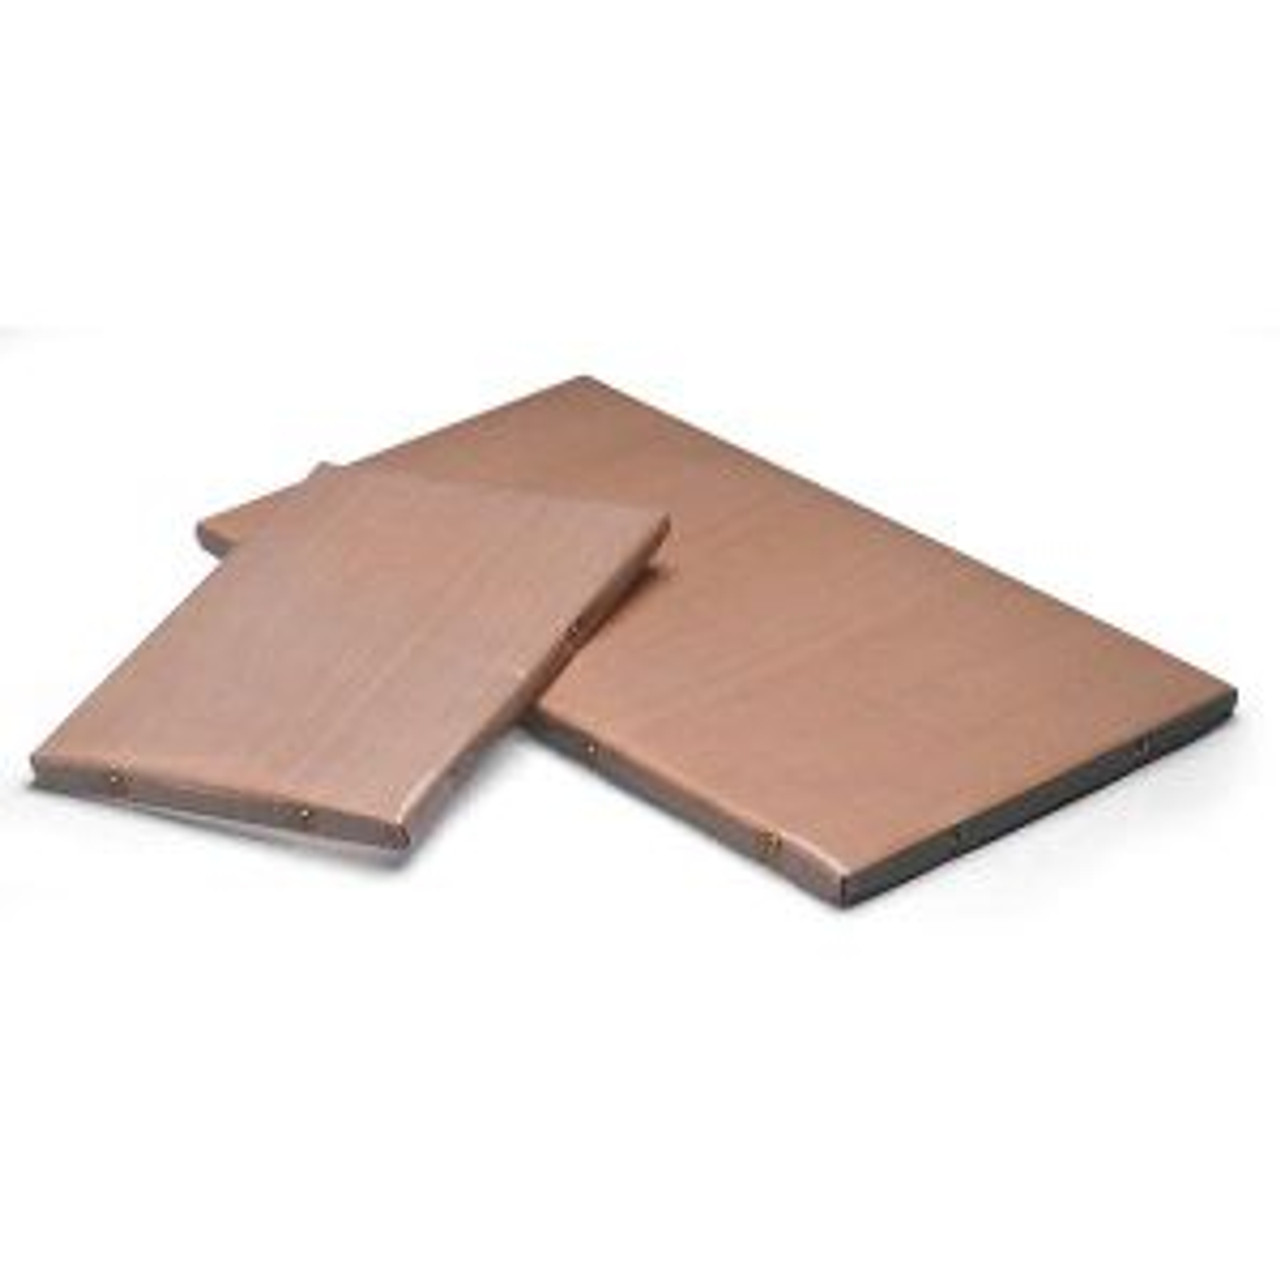 6 x 15 Replacement Teflon Pad - Heat Seal